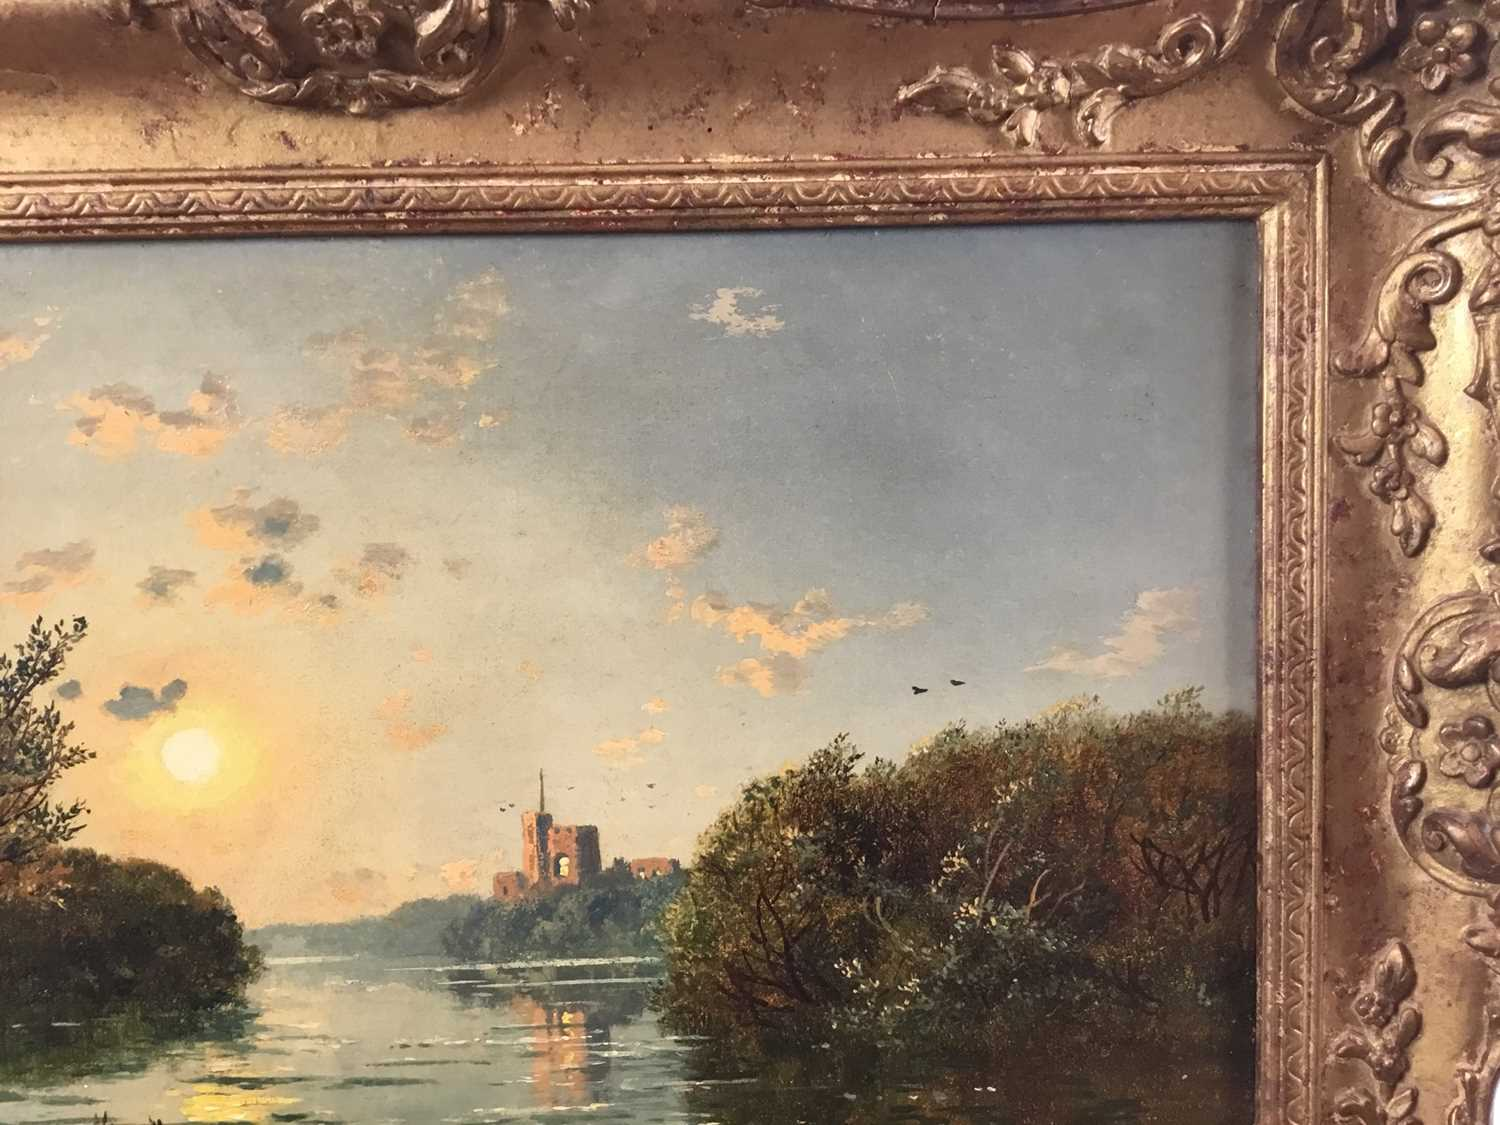 """Edmund John Niemann 1813 - 1876 """"On The River Wye"""", oil on canvas, signed, in gilt frame, gallery - Image 6 of 7"""